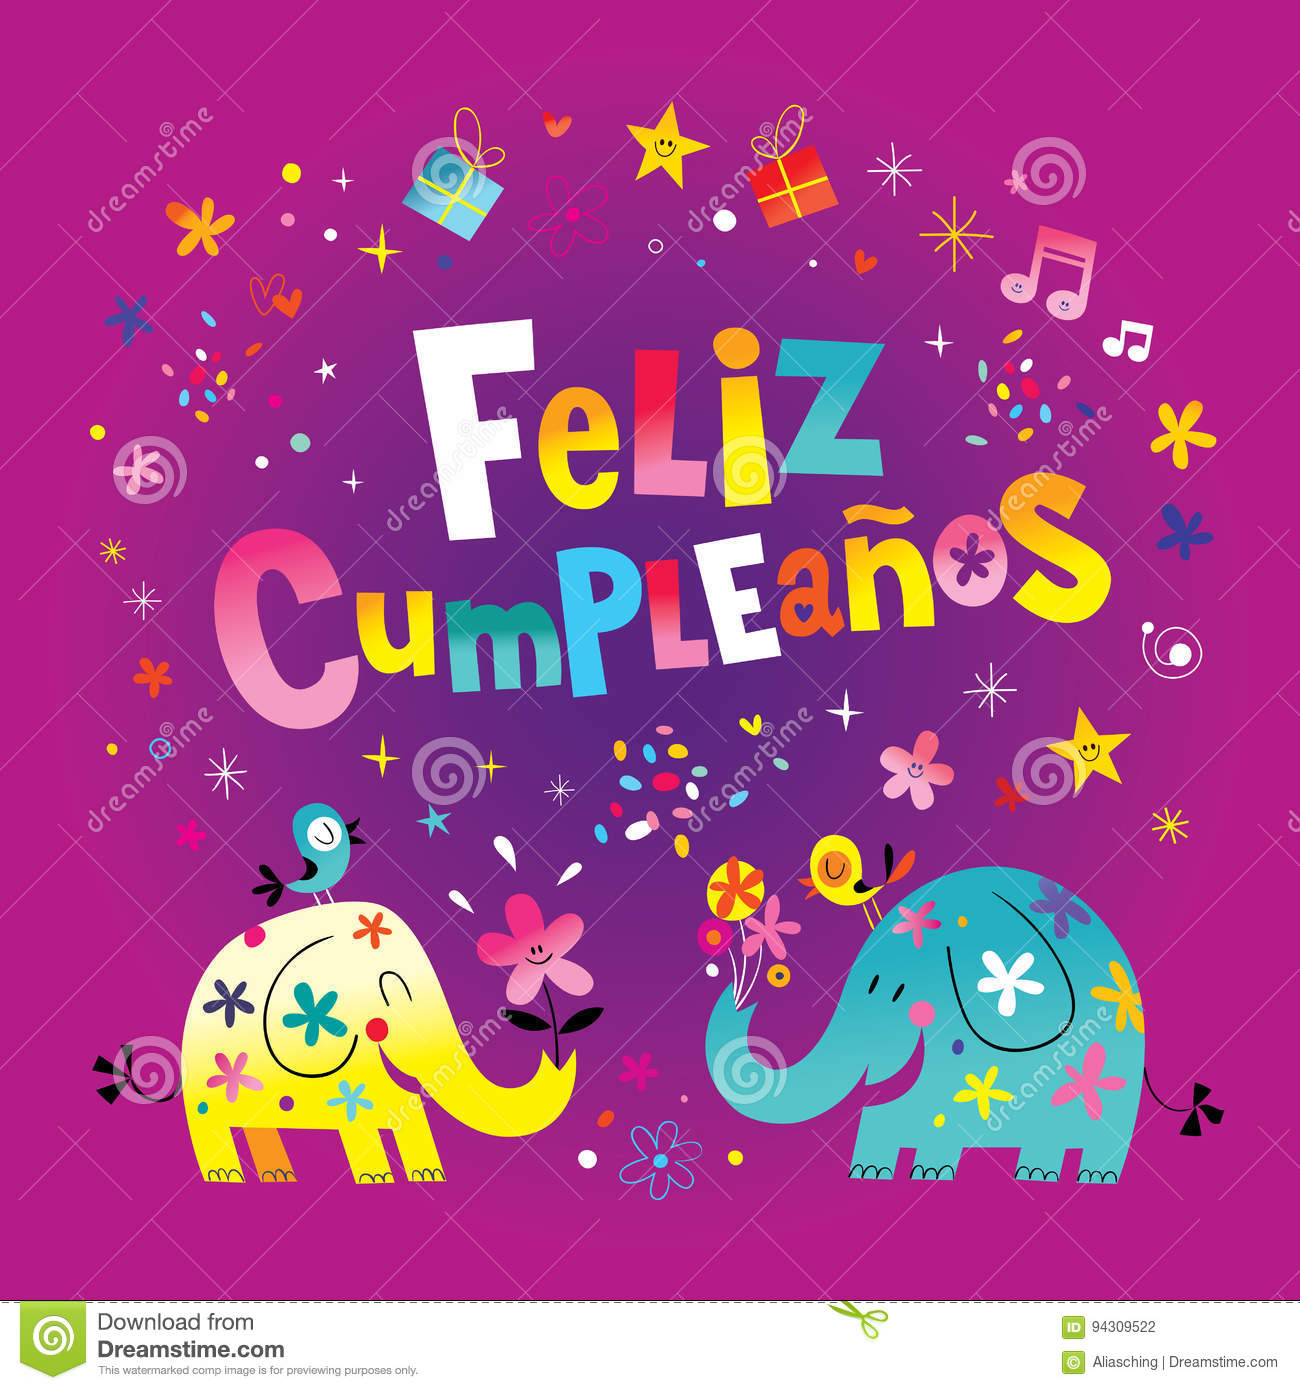 Feliz Cumpleanos Happy Birthday In Spanish Card Cartoon Vector